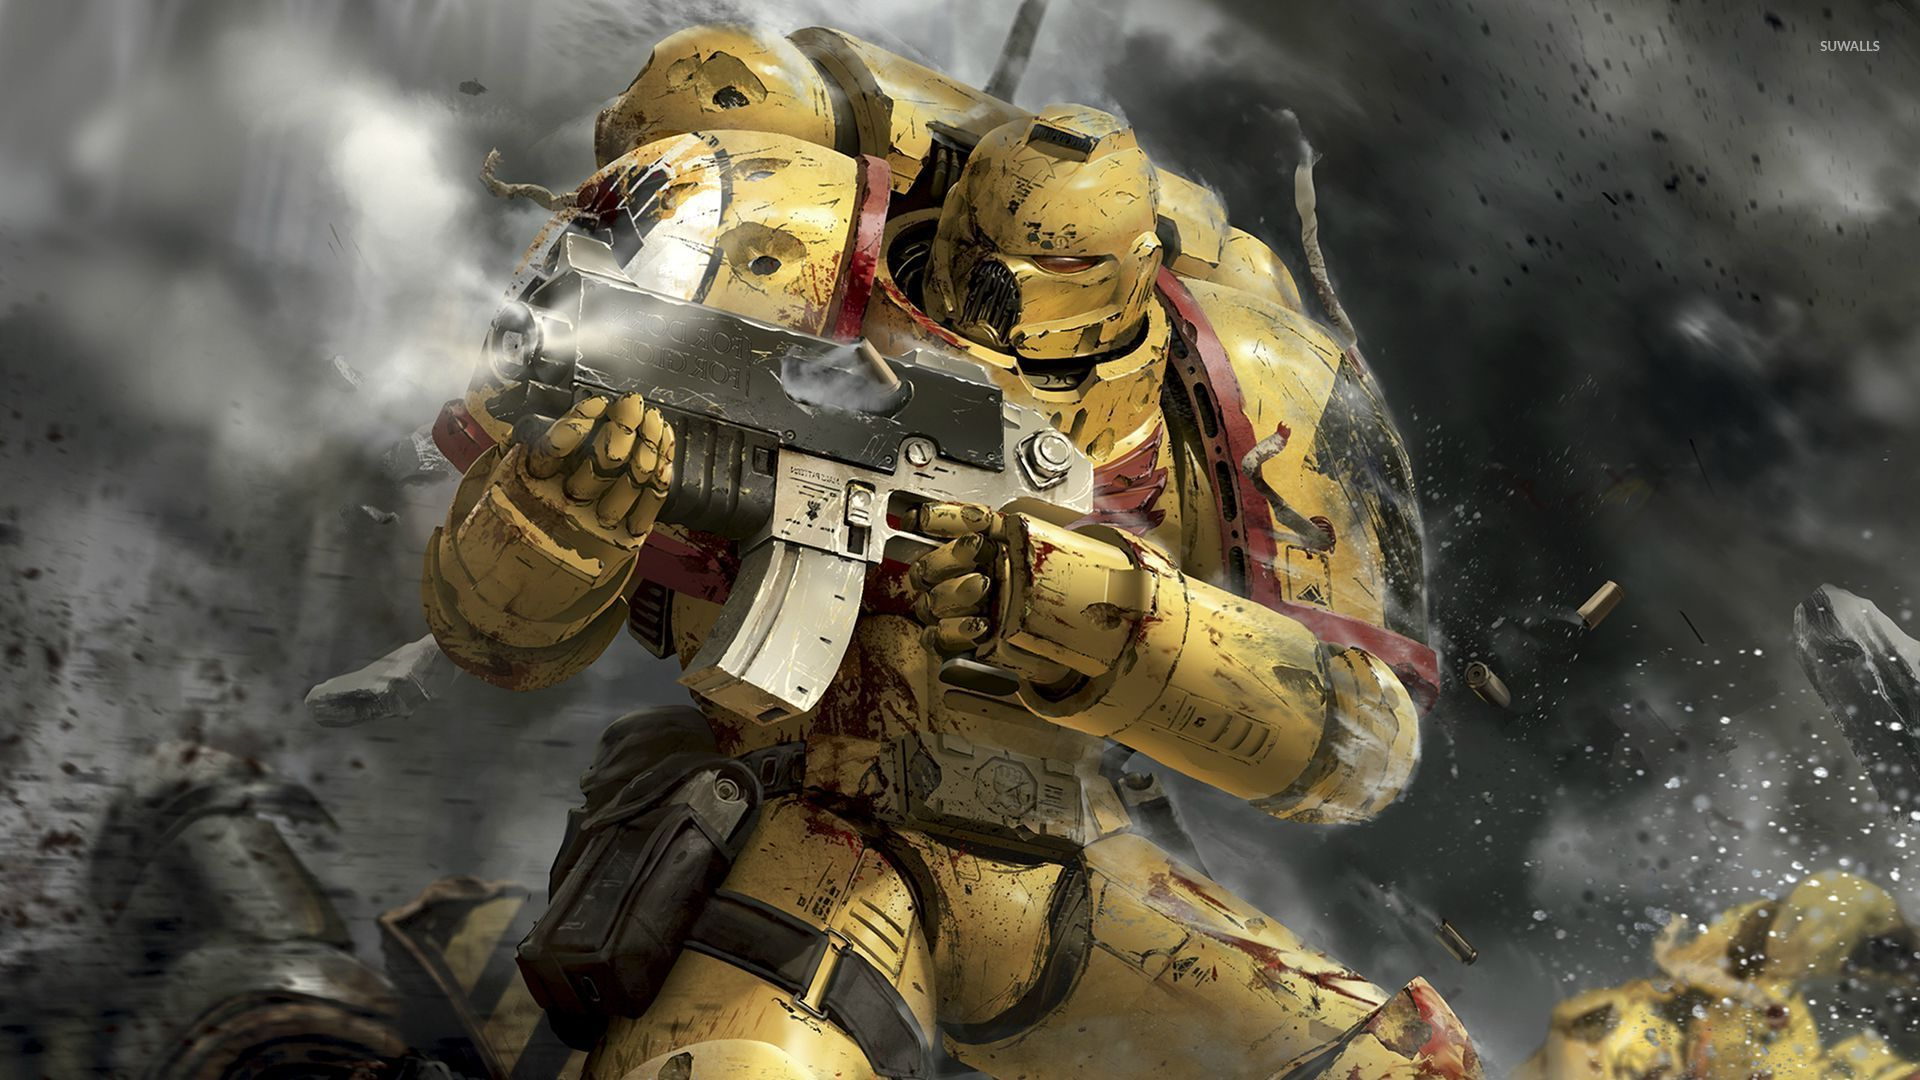 warhammer 40k ultramarines wallpaper 73232 | timehd